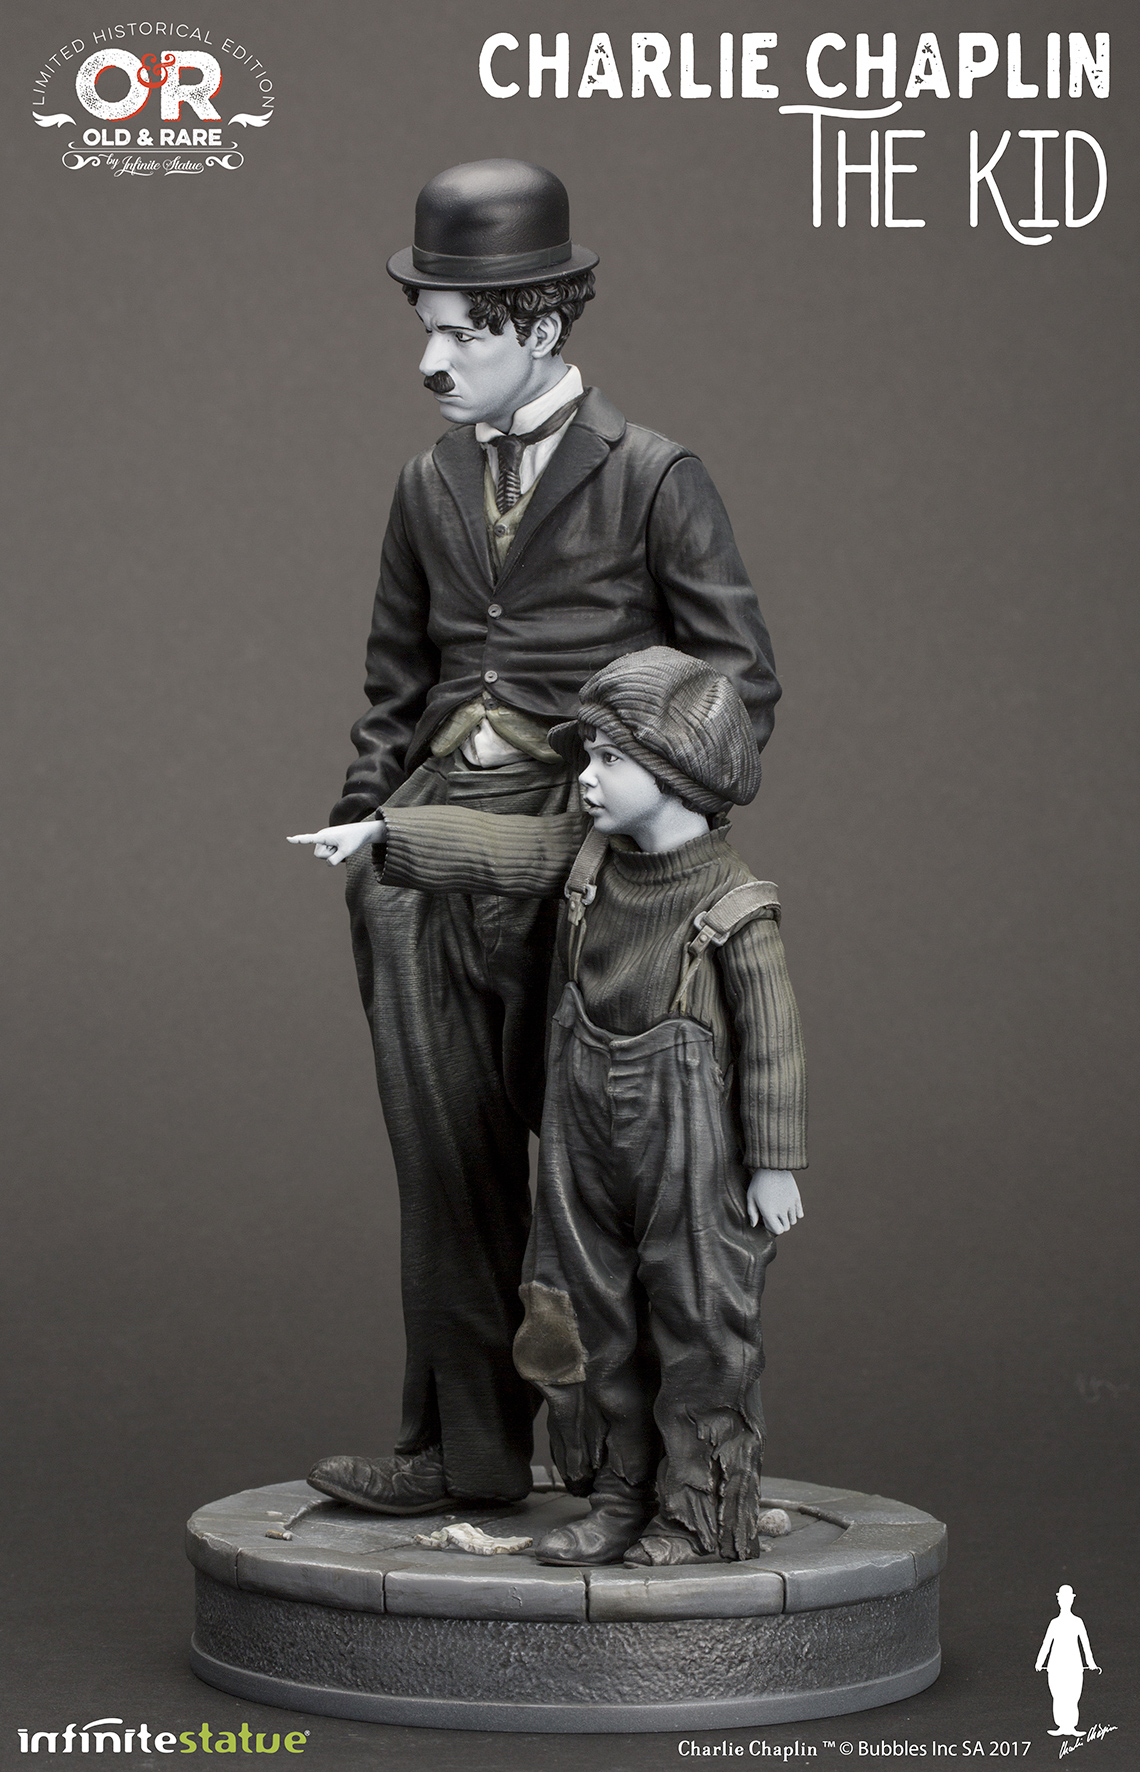 Charlie-Chaplin-O-Garoto-The-Kid-Infinite-Statue-05